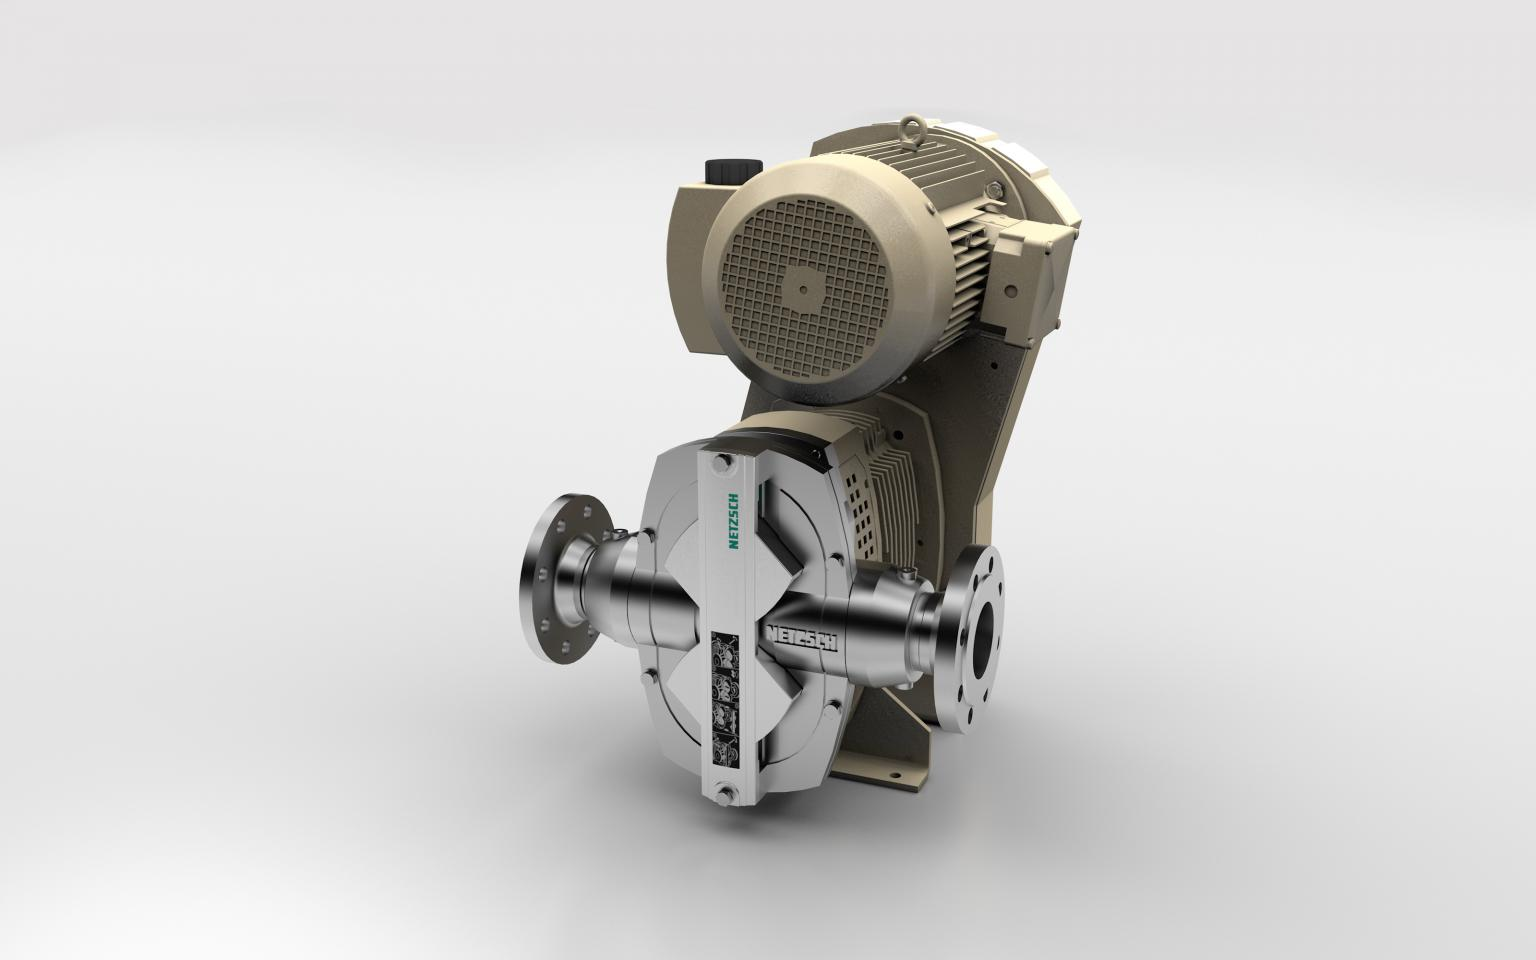 Tank emptying easily leads to breakdowns, particularly with centrifugal pumps. A detergent manufacturer has therefore changed over to a T.Proc full-metal rotary lobe pump to convey its ingredients